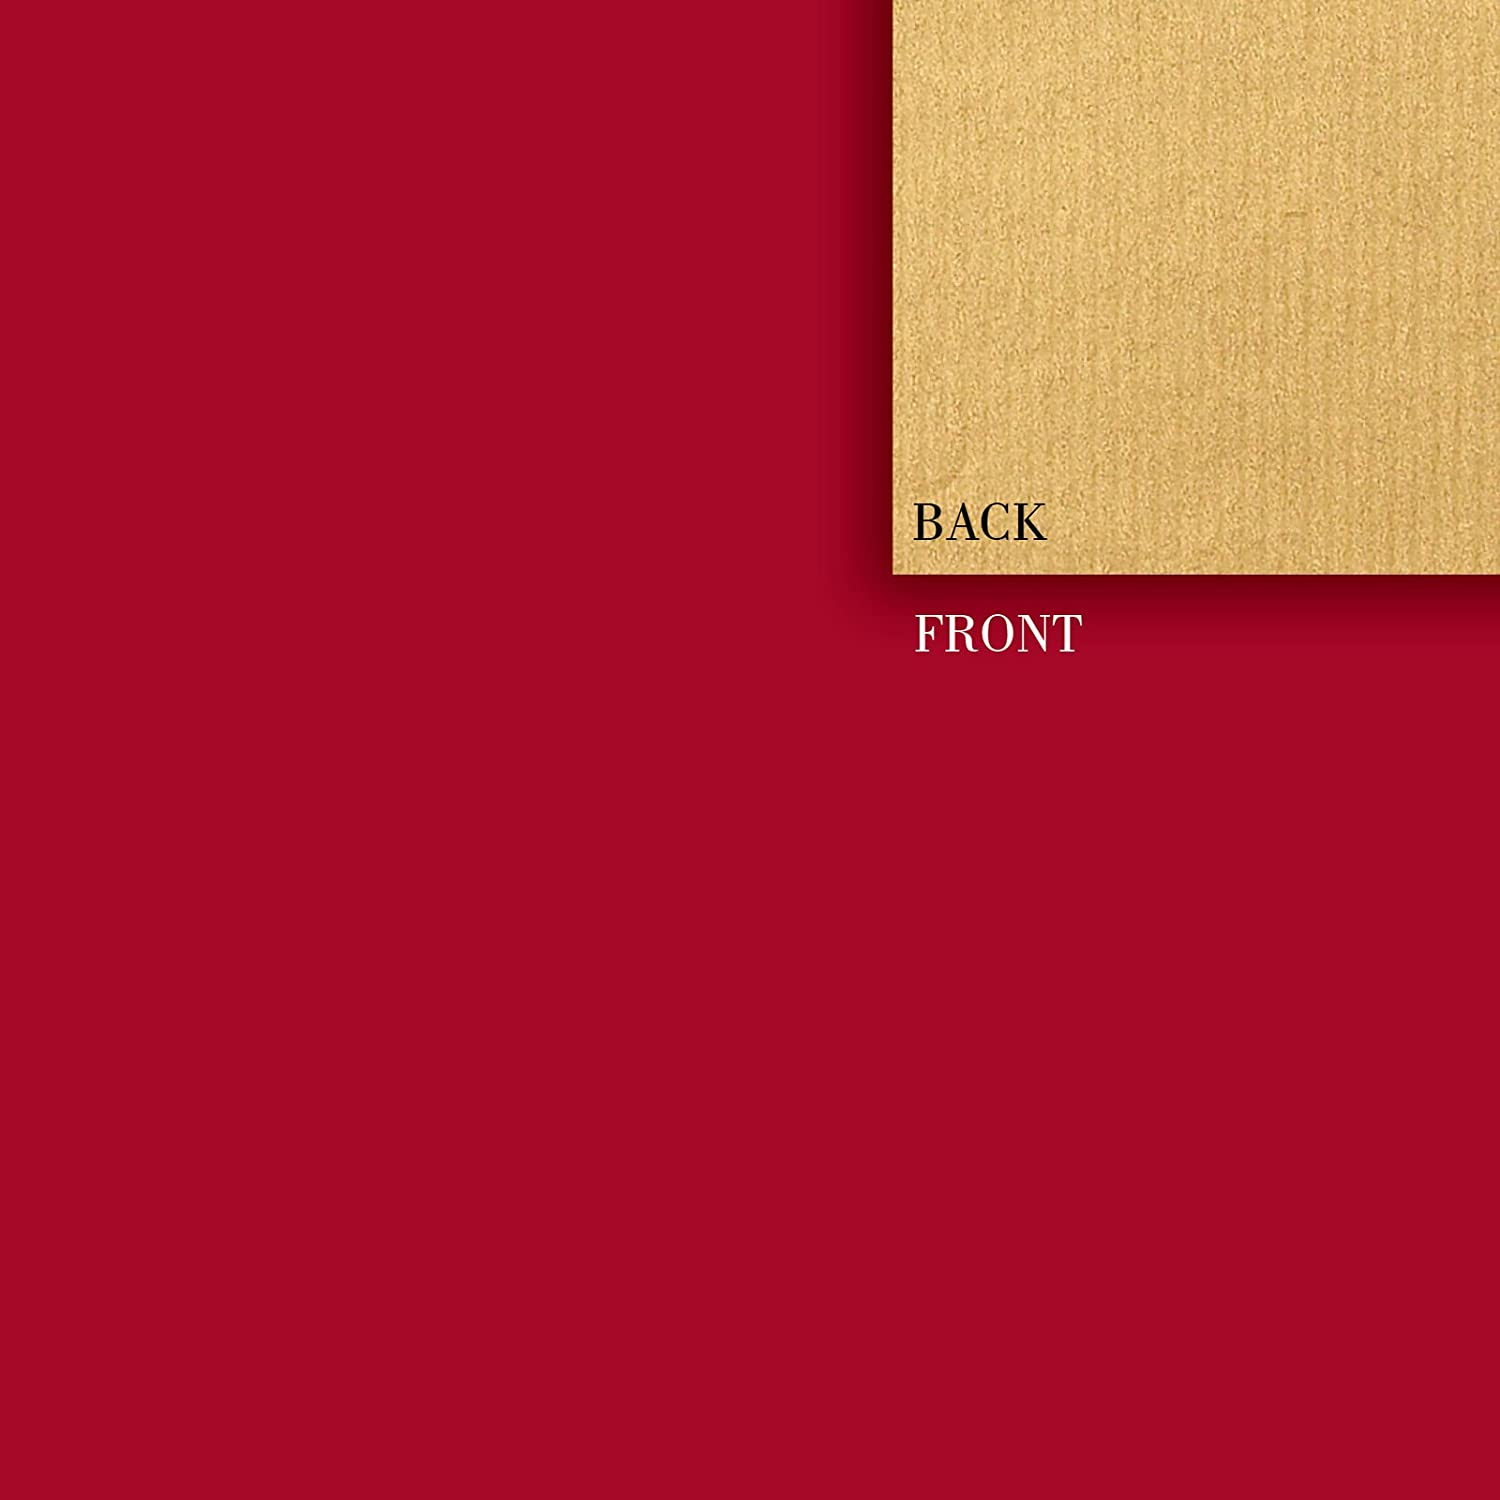 Jillson Roberts Double-Sided Gift Wrap, Red and Gold Kraft, 6-Roll Count (R993)